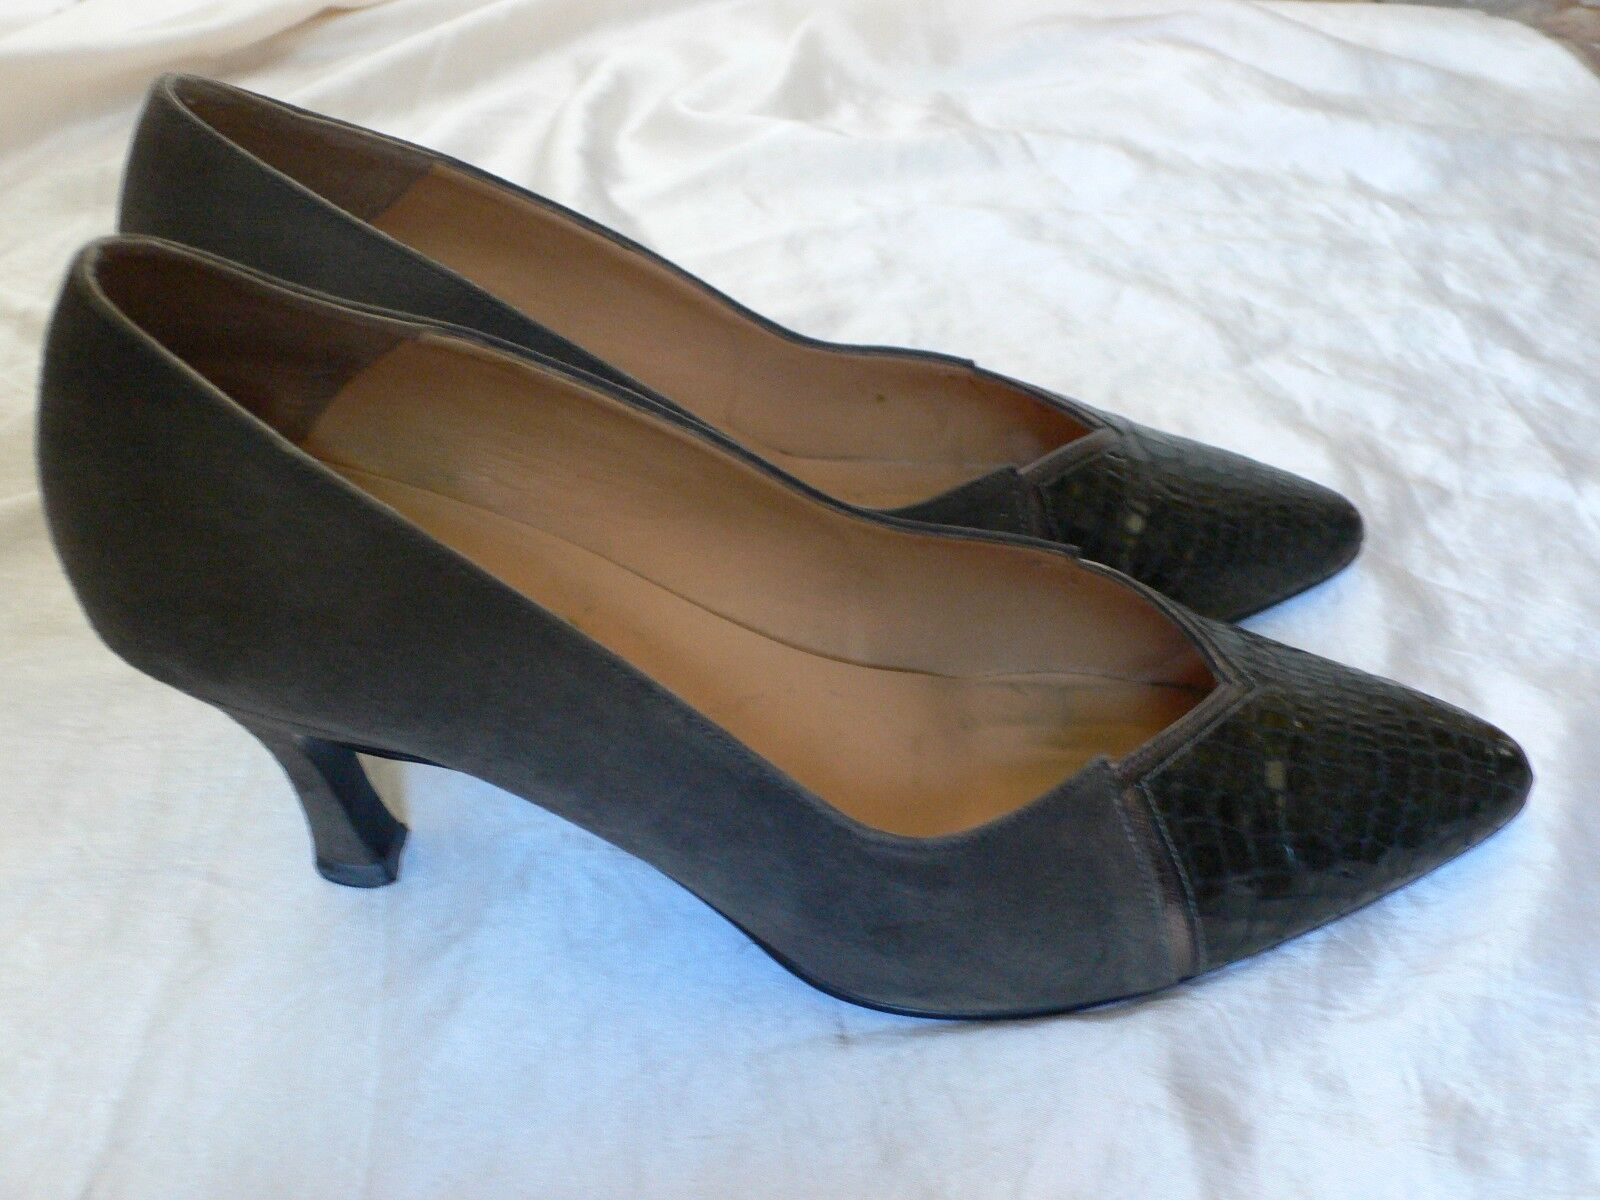 7 Grey Suede and Croc Leather 1980s 1990s Vintage shoes by Bally